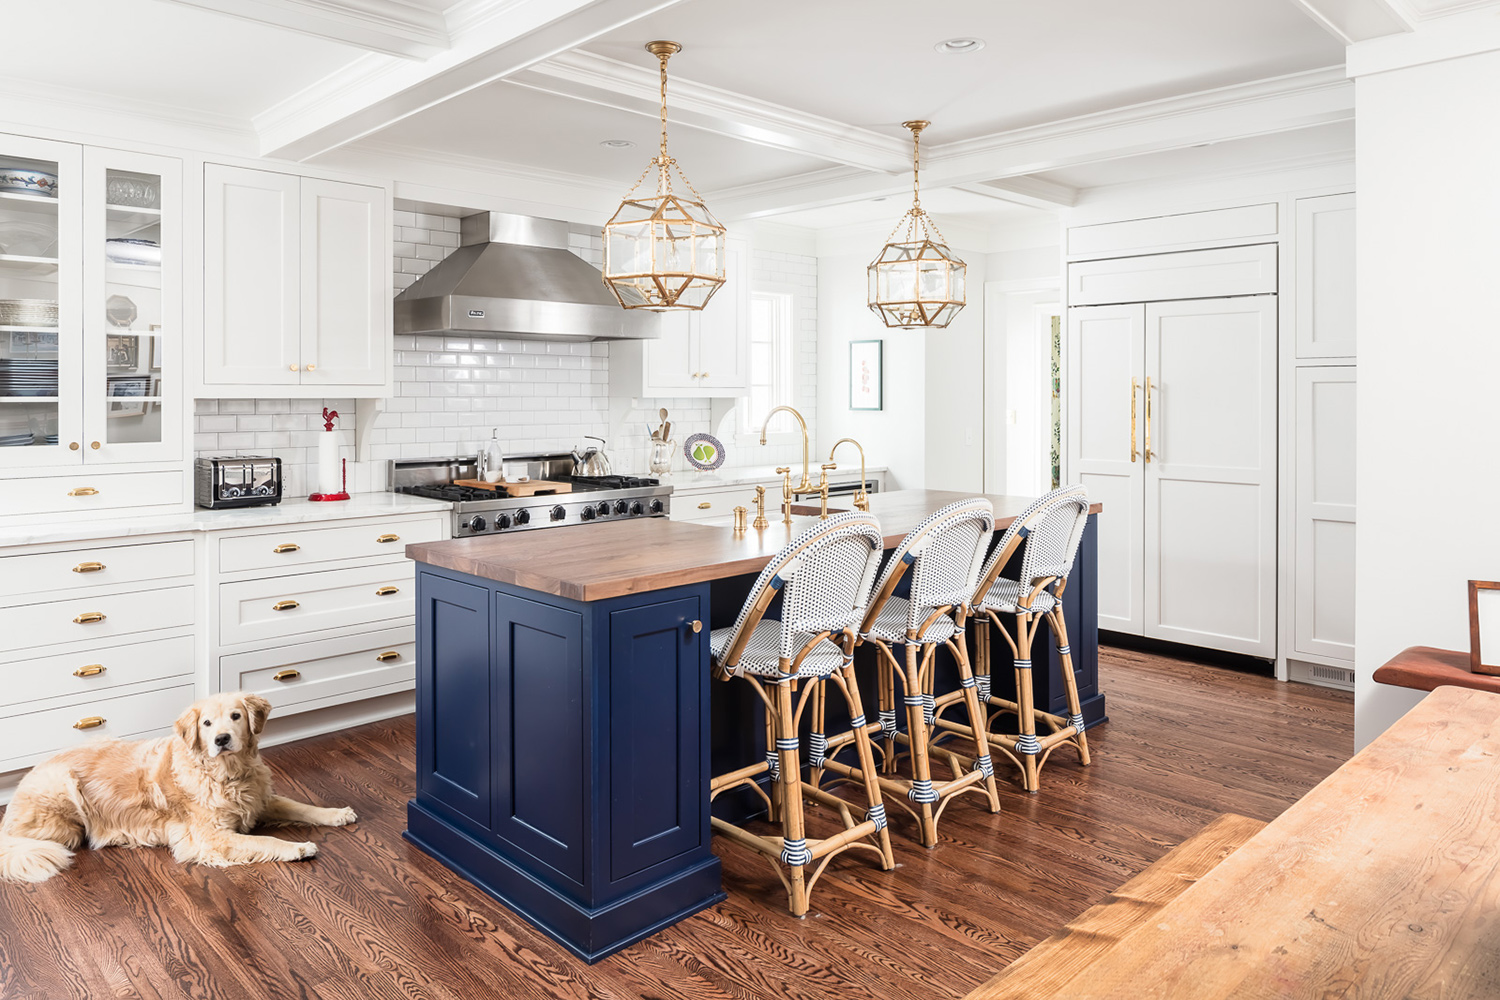 Photo of a renovated kitchen